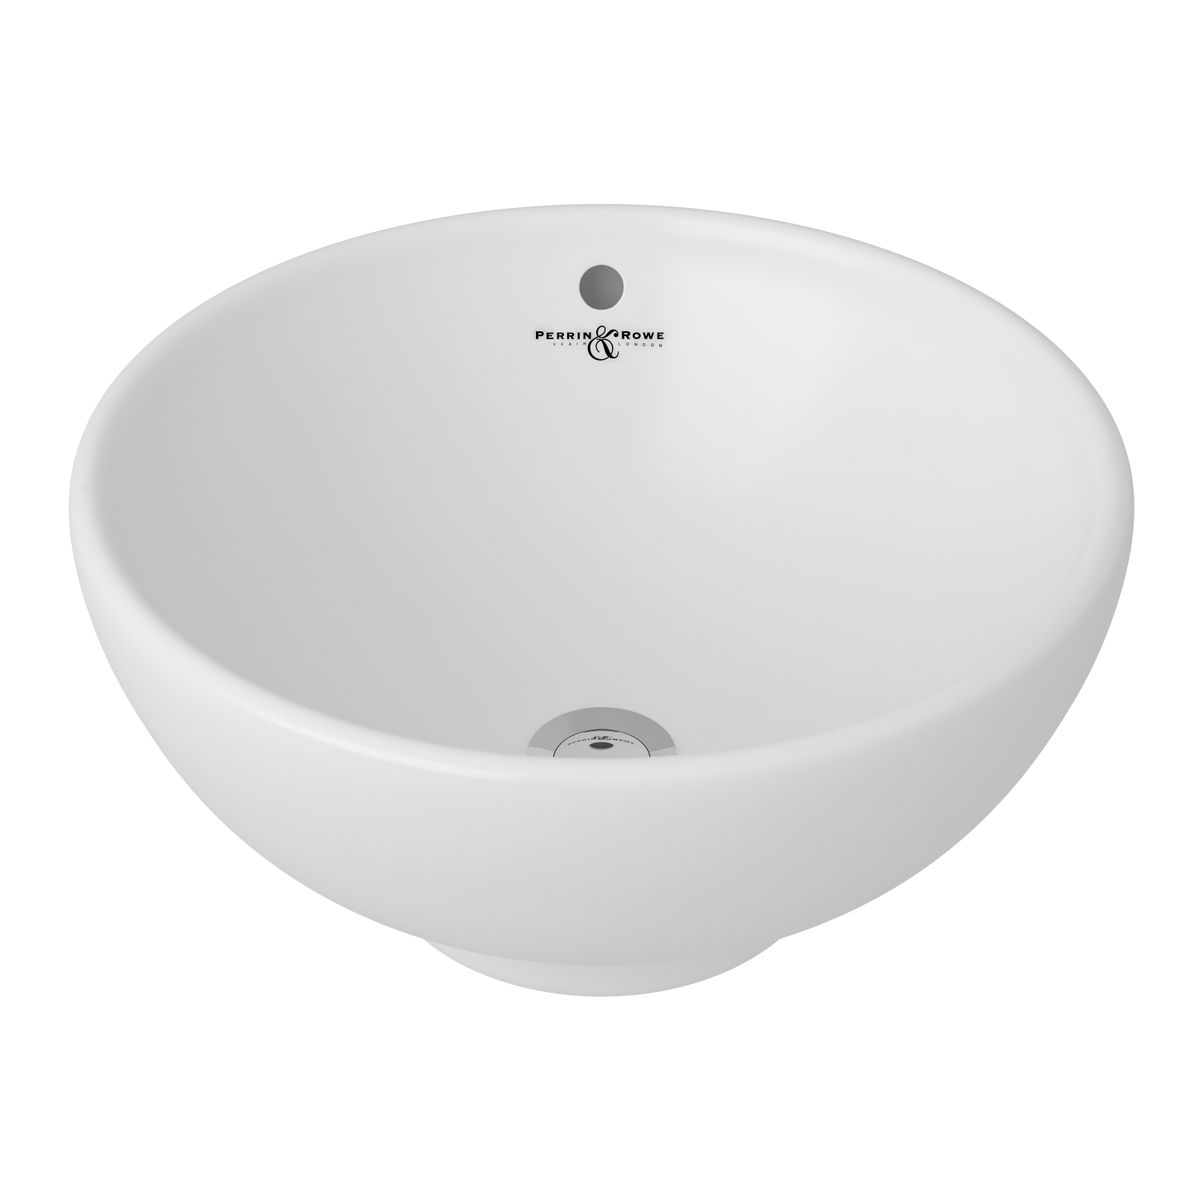 ROHL Perrin & Rowe Vessel Sink with Overflow_U2512WH